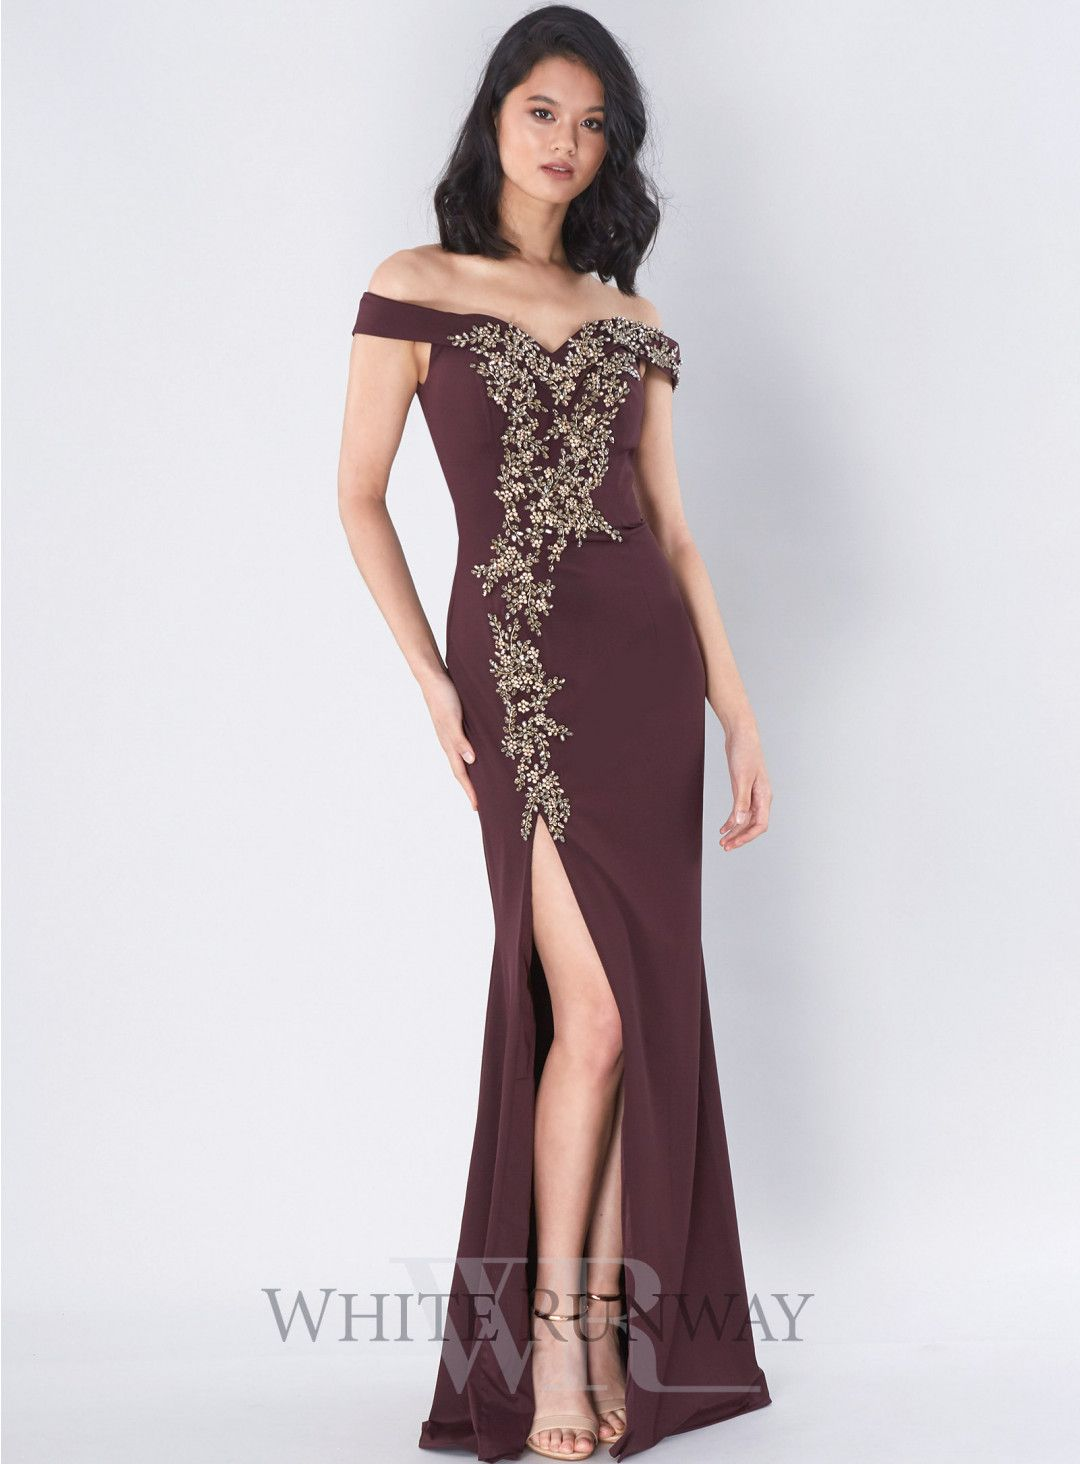 329d25c29f Foresta Gown. A beautiful full length dress by Jadore Evening. An off  shoulder style featuring a sweetheart neckline